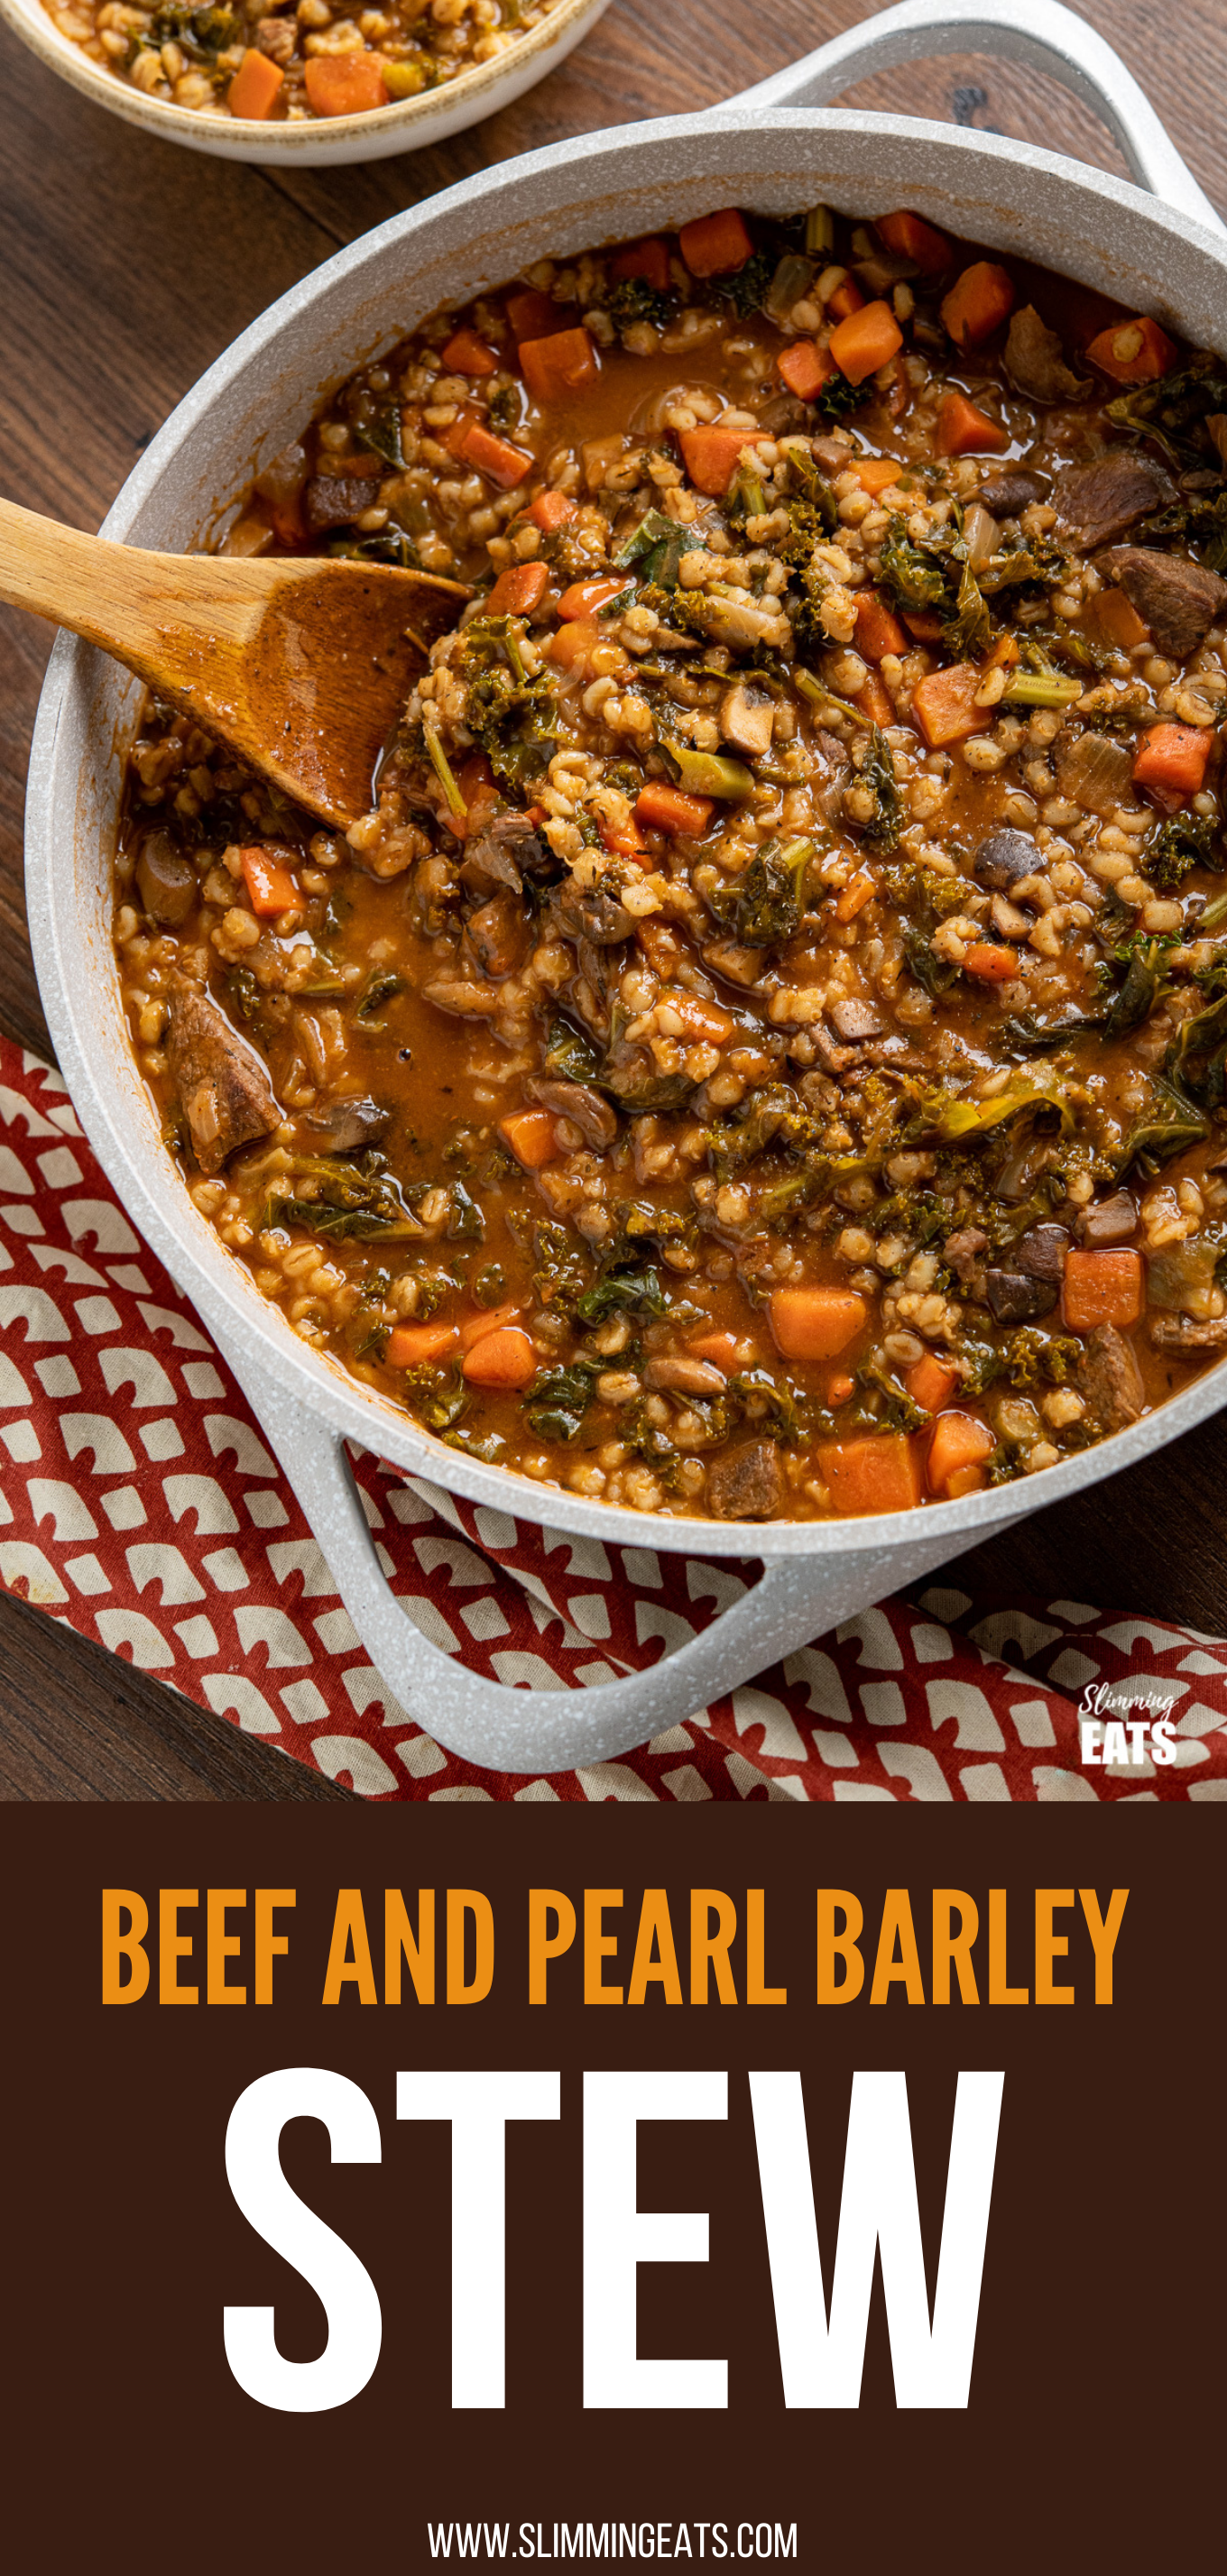 Beef and Pearl Barley Stew in casserole pot with wooden spoon pin image